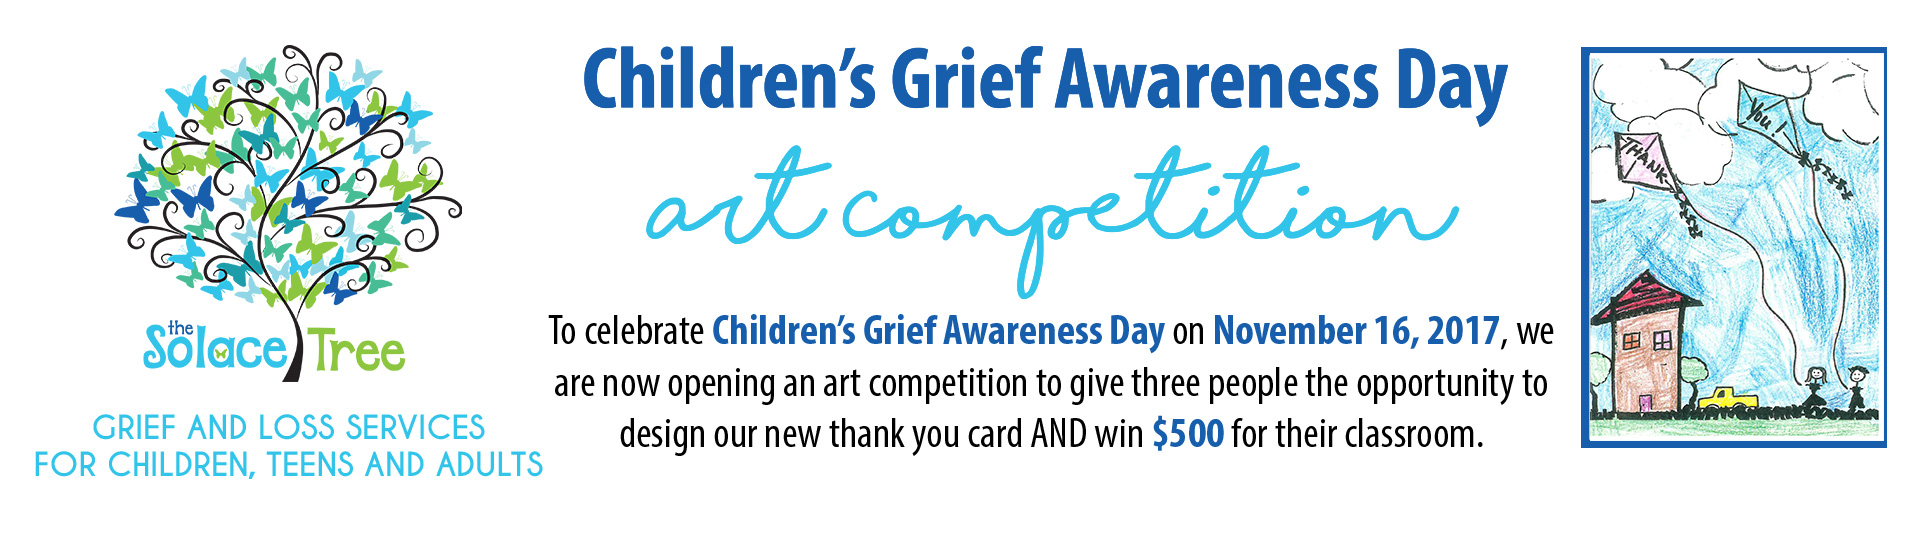 childrens-grief-awareness-art-competition